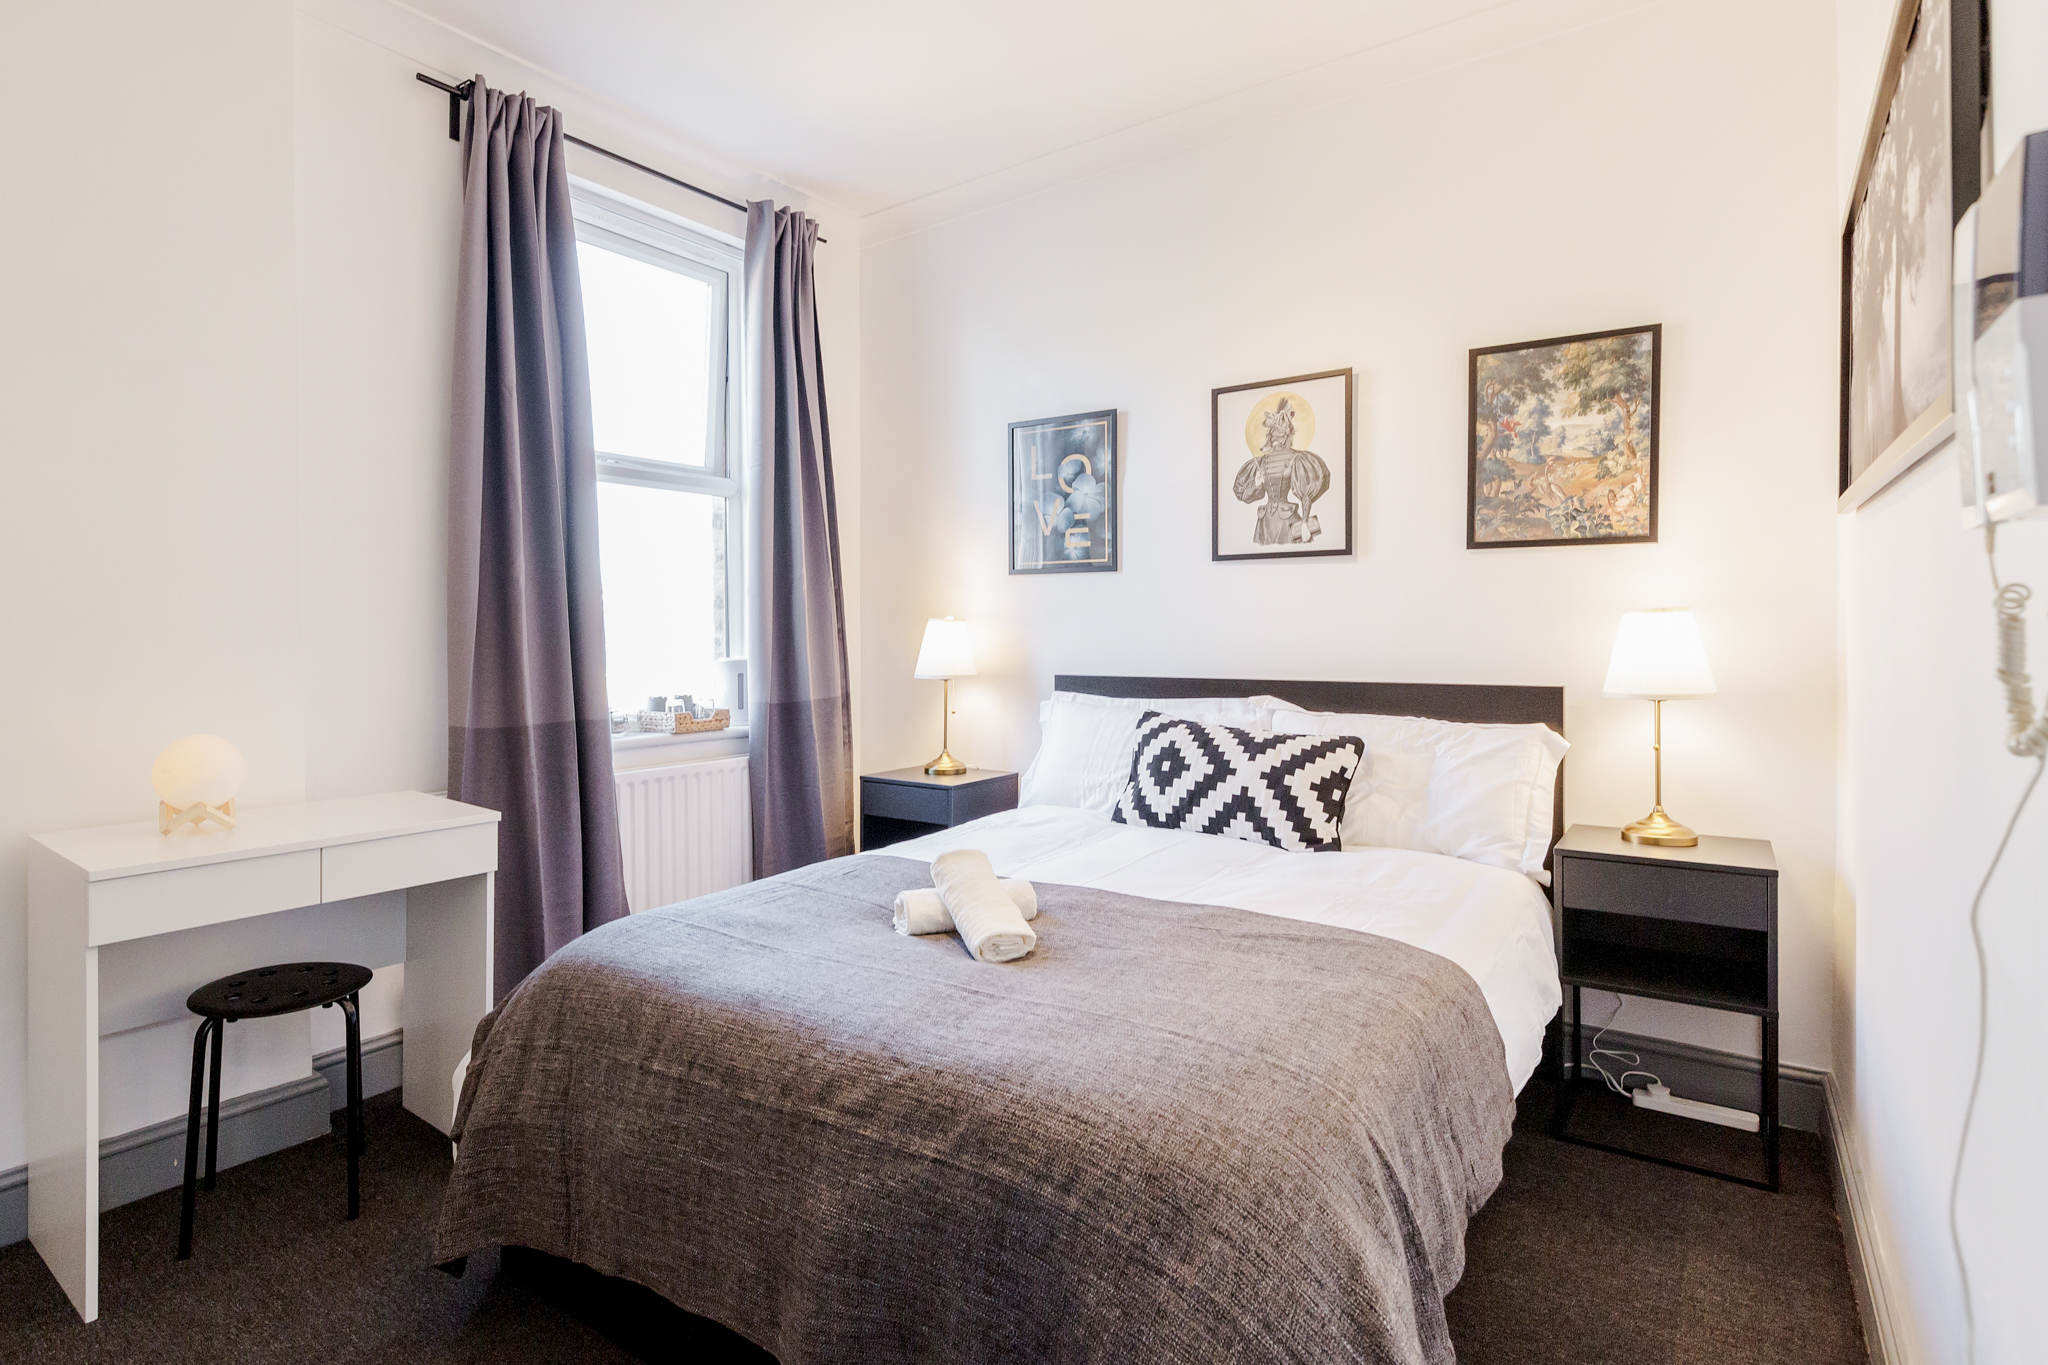 The Dark Room - Double room with private bathroom 10 minutes walk from Aldgate photo 13929576